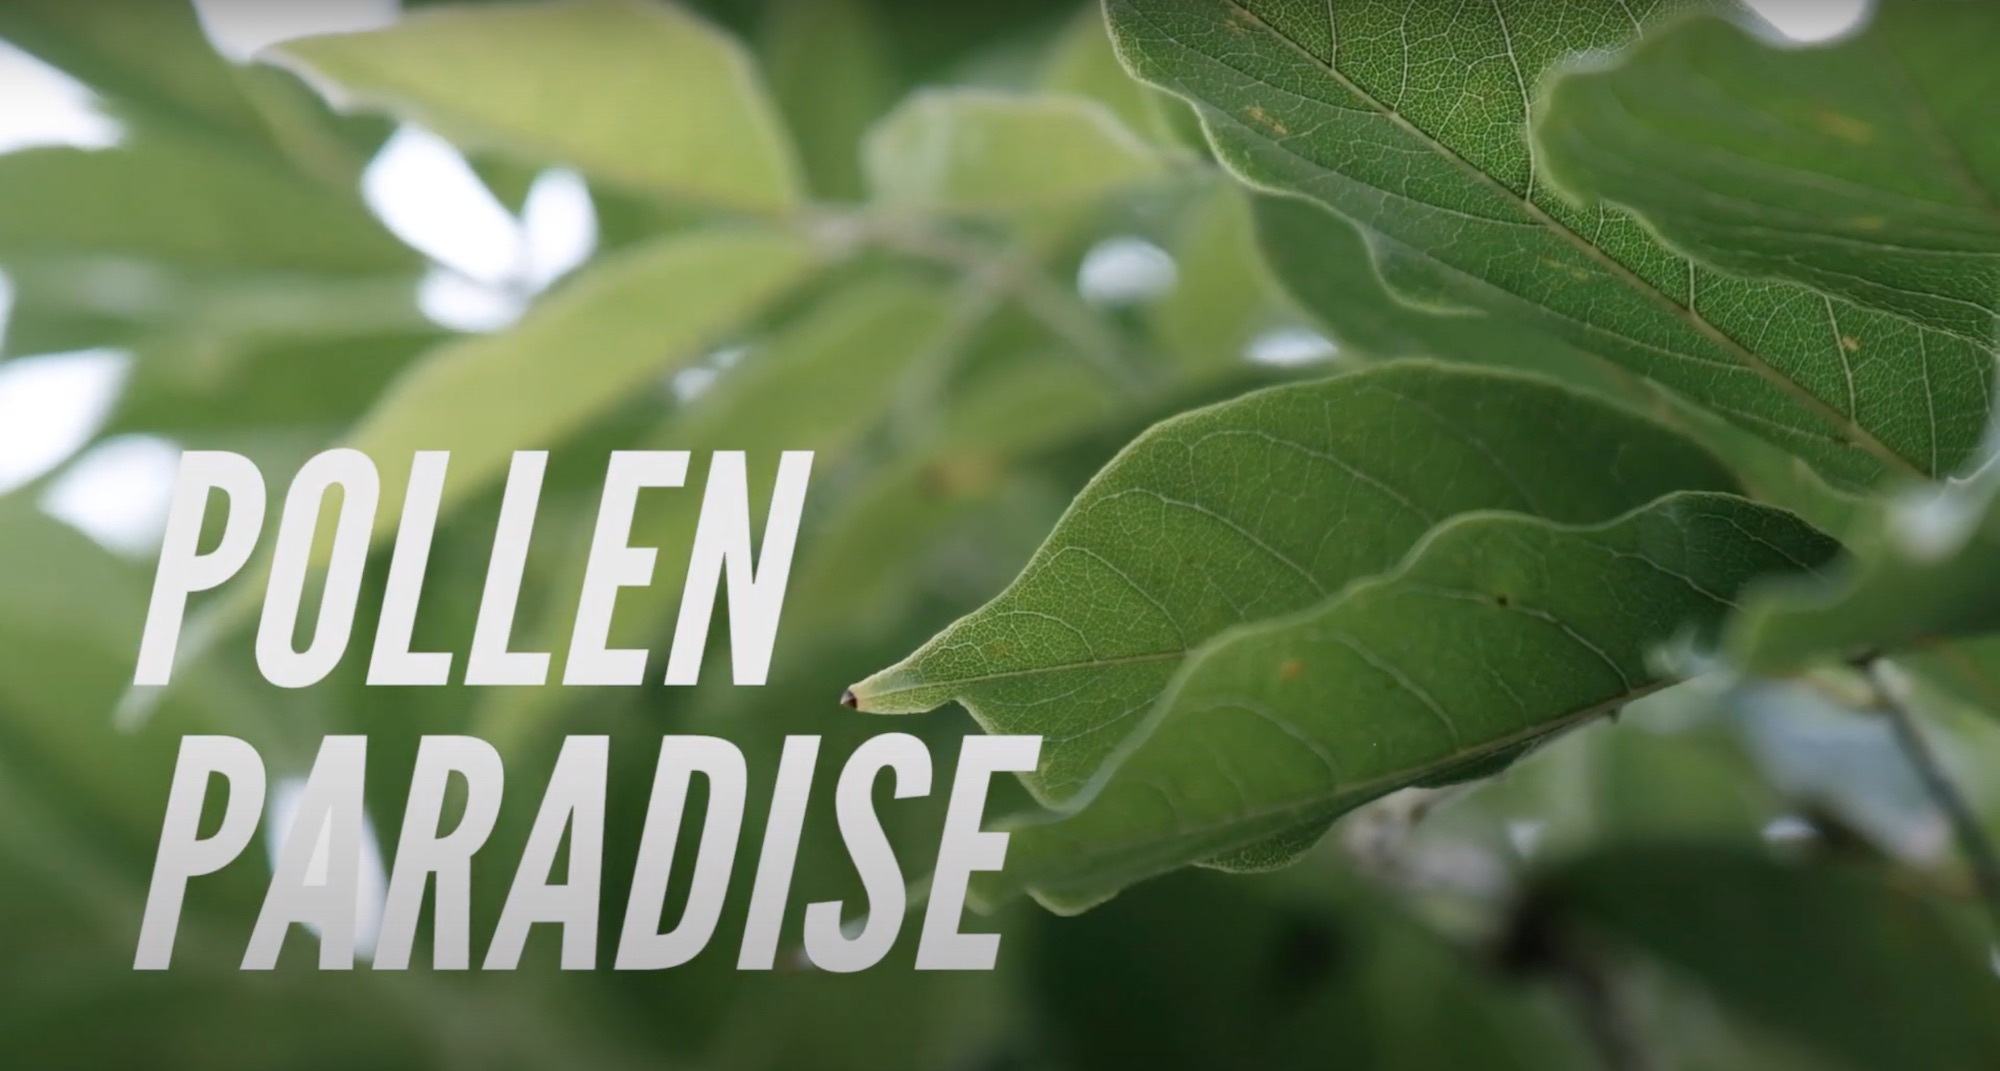 Screenshot Pollen paradise wildlife nature video production company in singapore coco creative studio